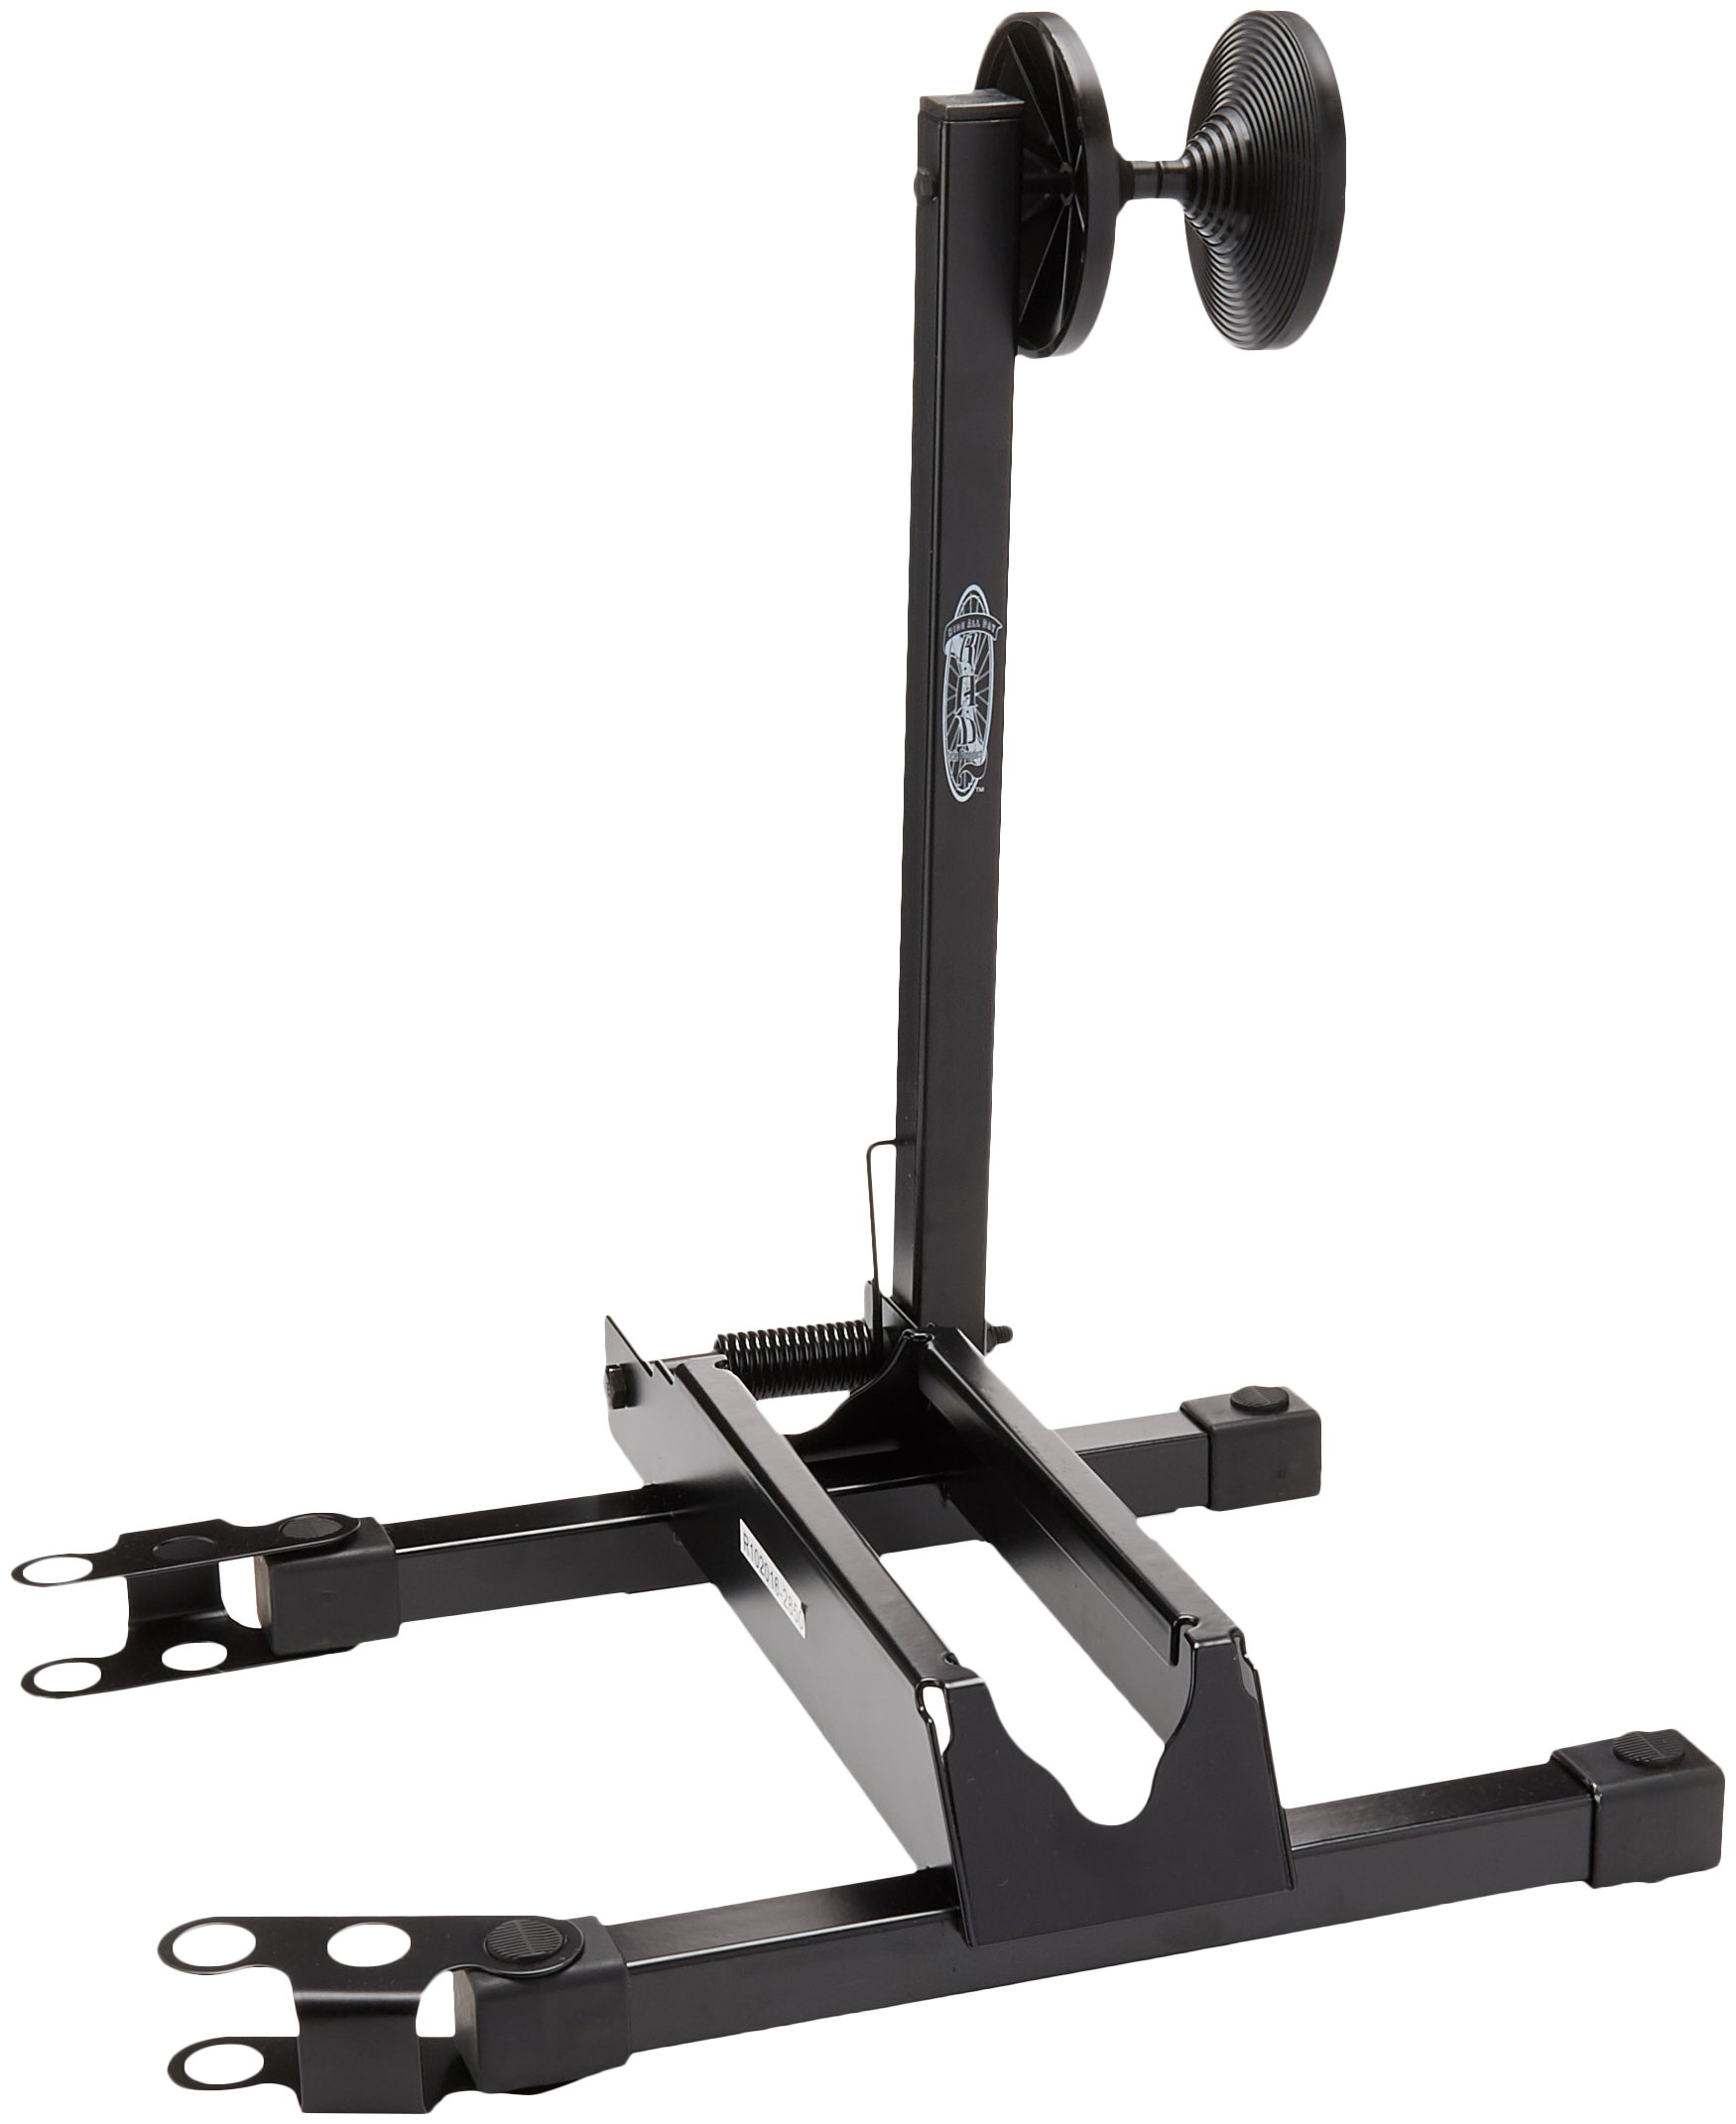 RAD Cycle Products EZConnect Bicycle Storage Floor Stand Foldable Bike Rack